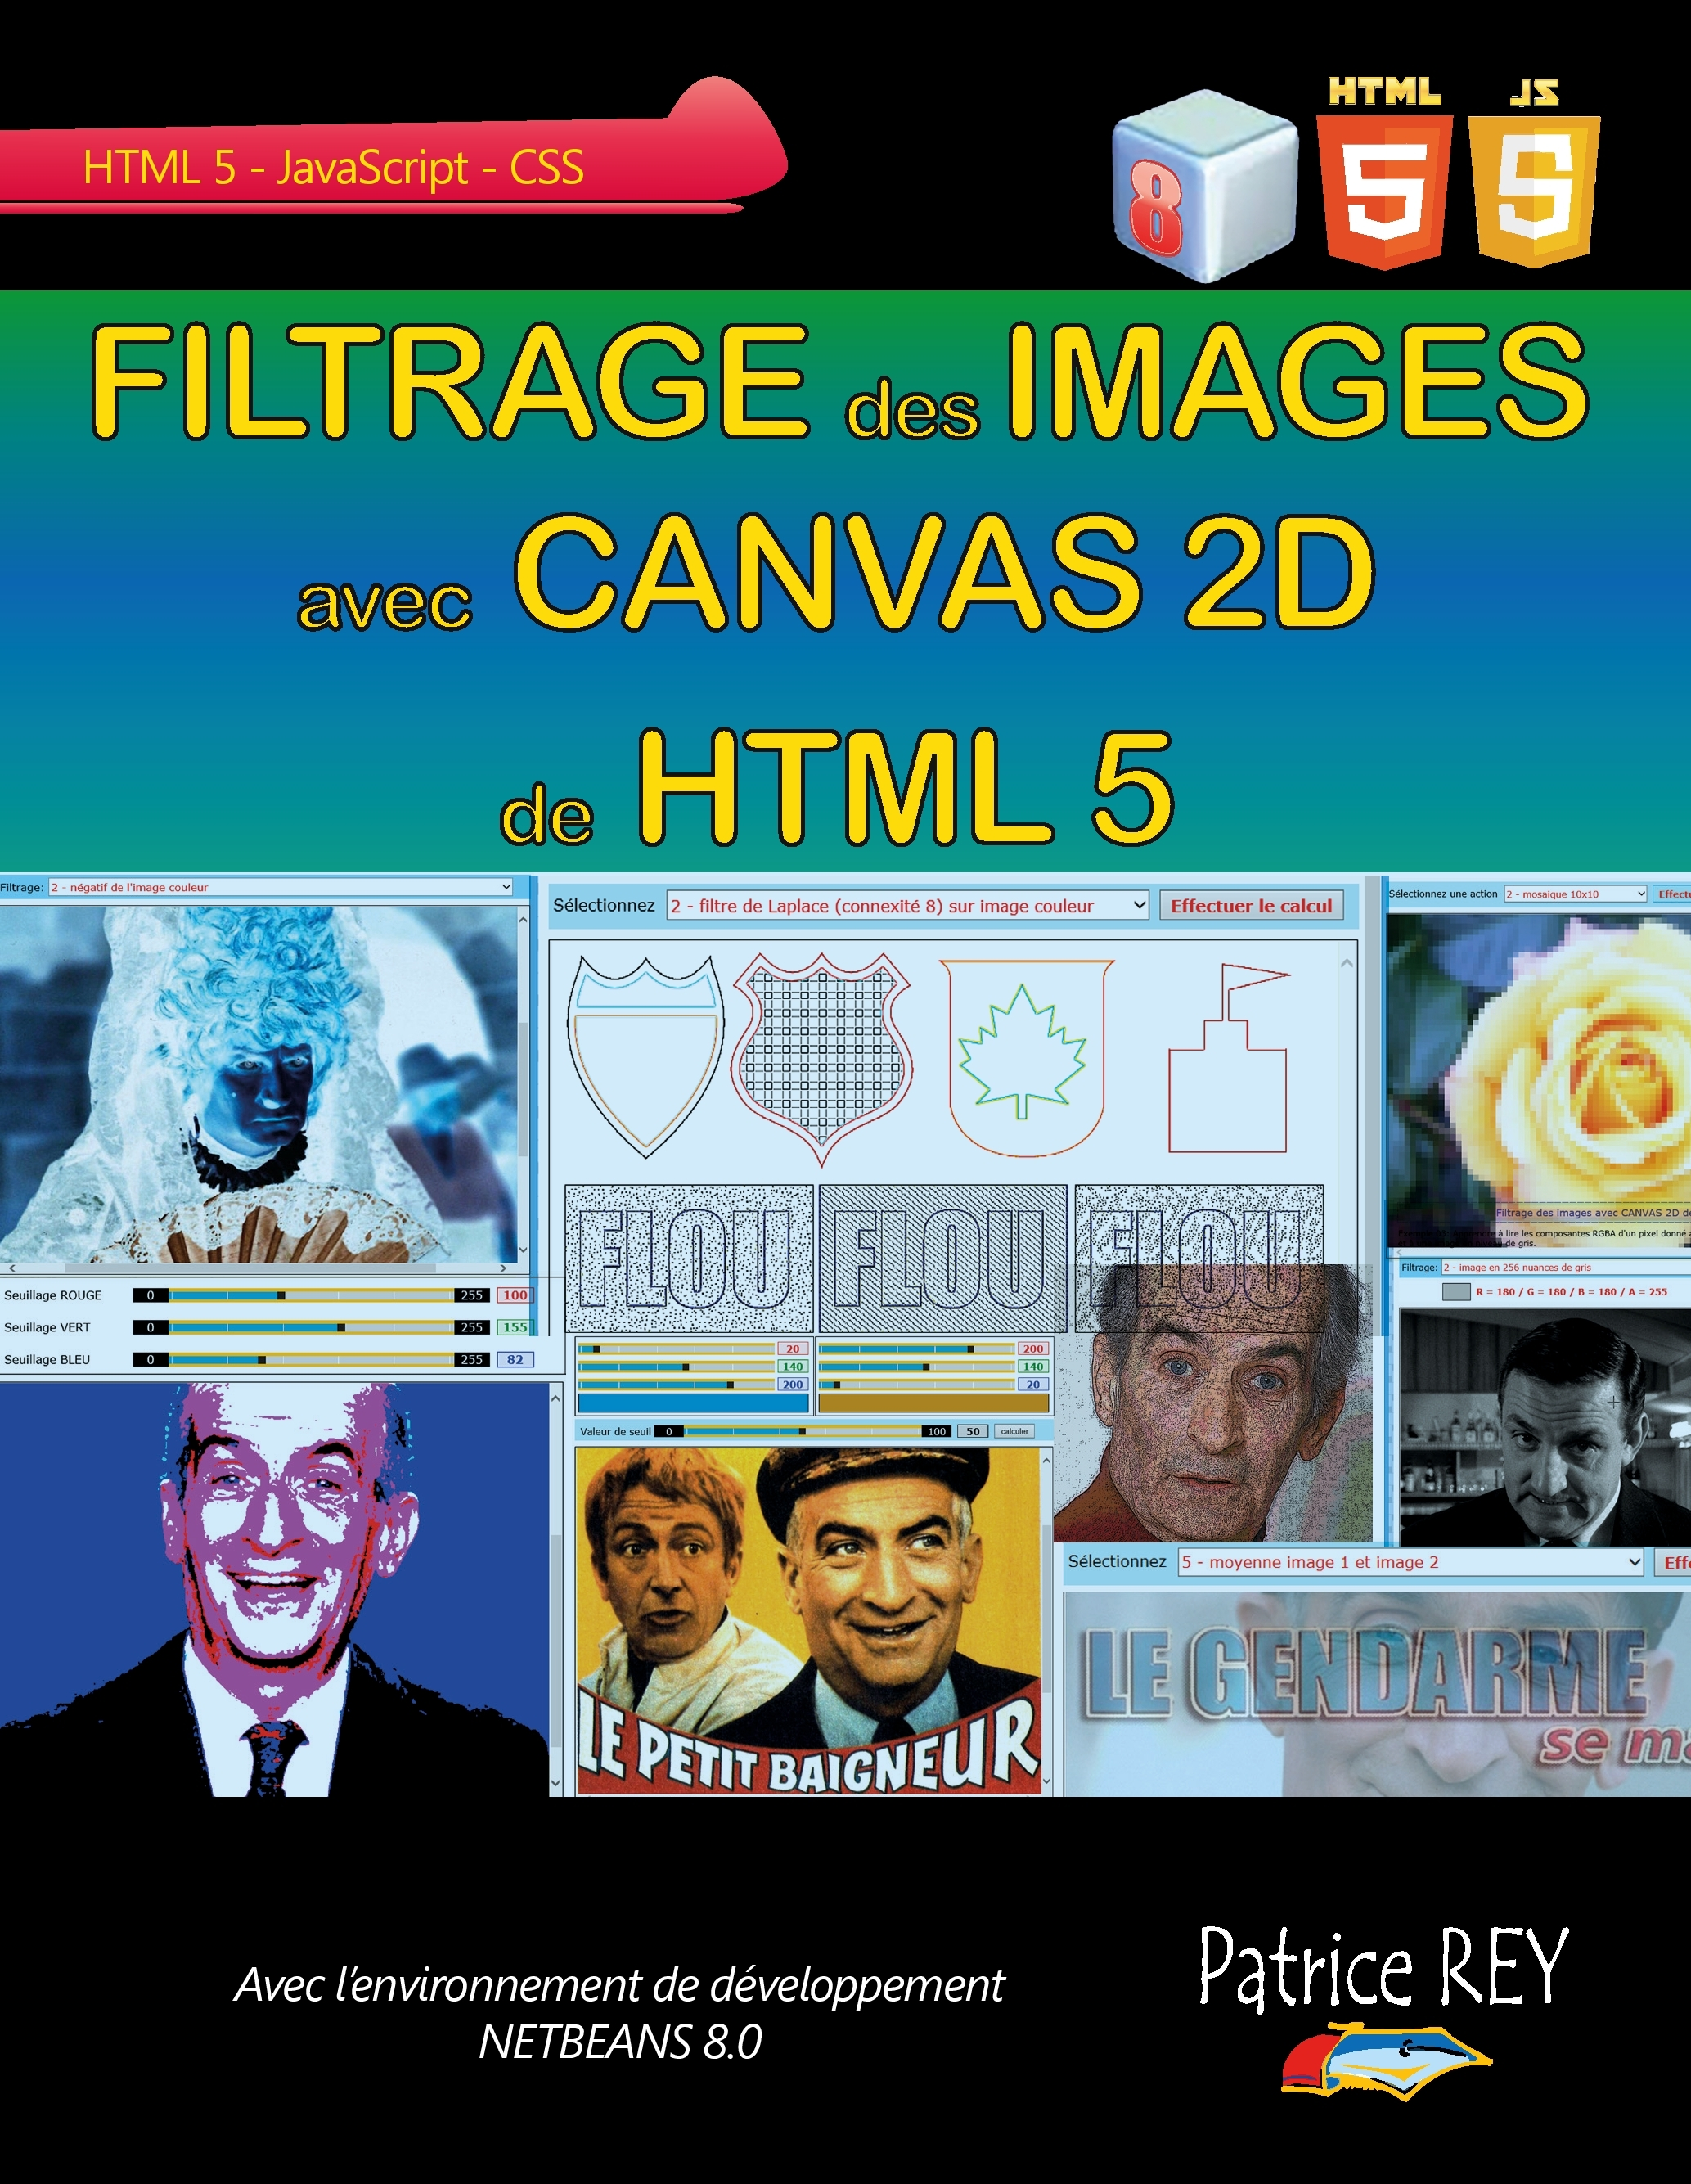 FILTRAGE DES IMAGES AVEC L'ELEMENT CANVAS 2D DE HTML 5